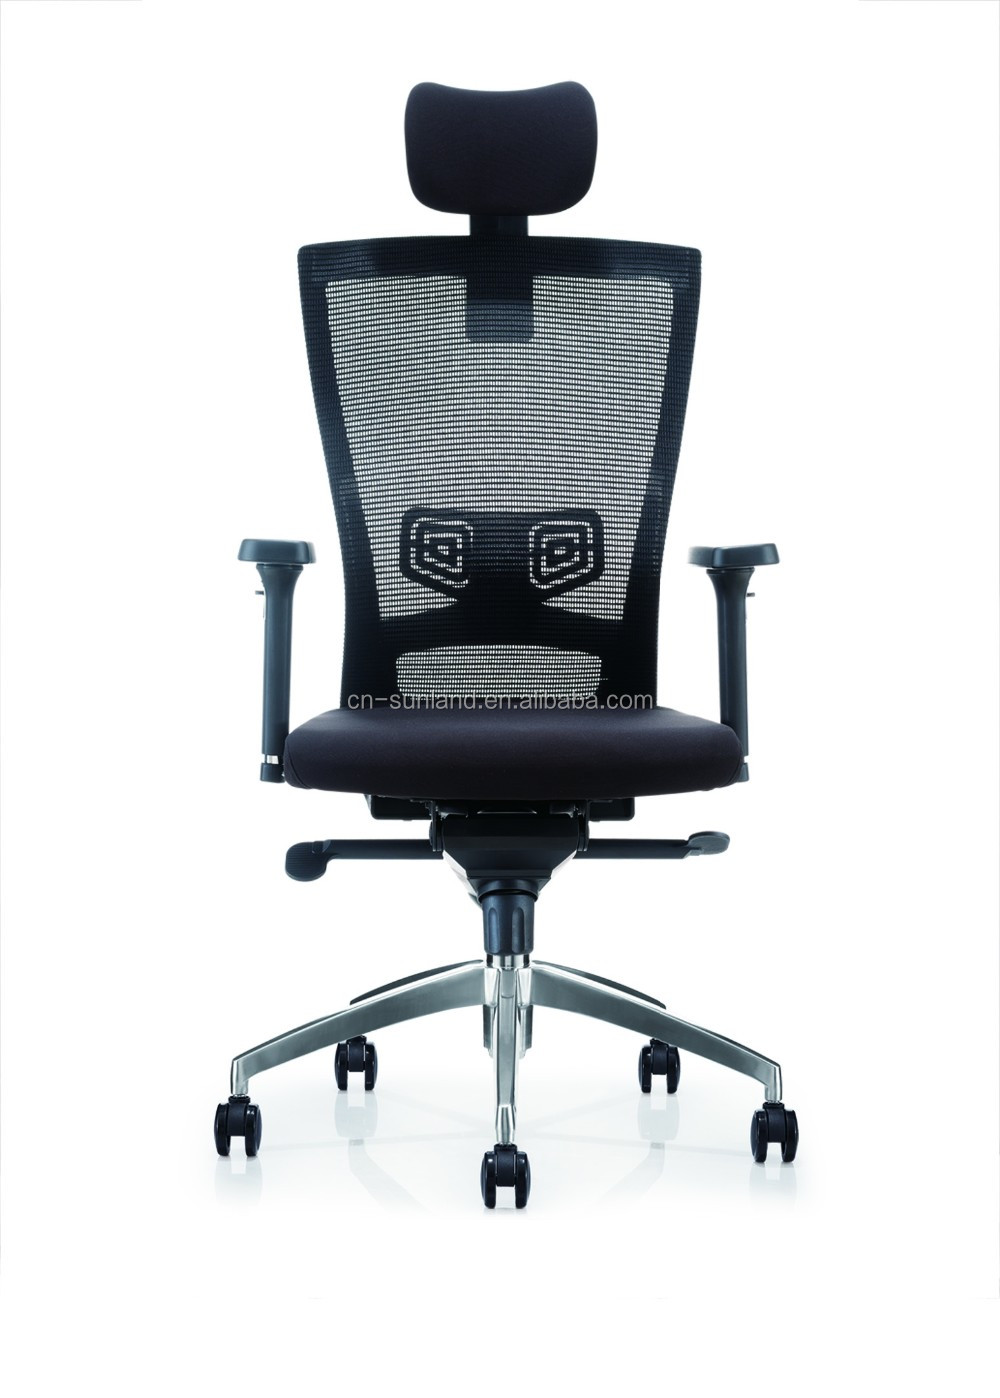 CEO high equipment/quality office chair